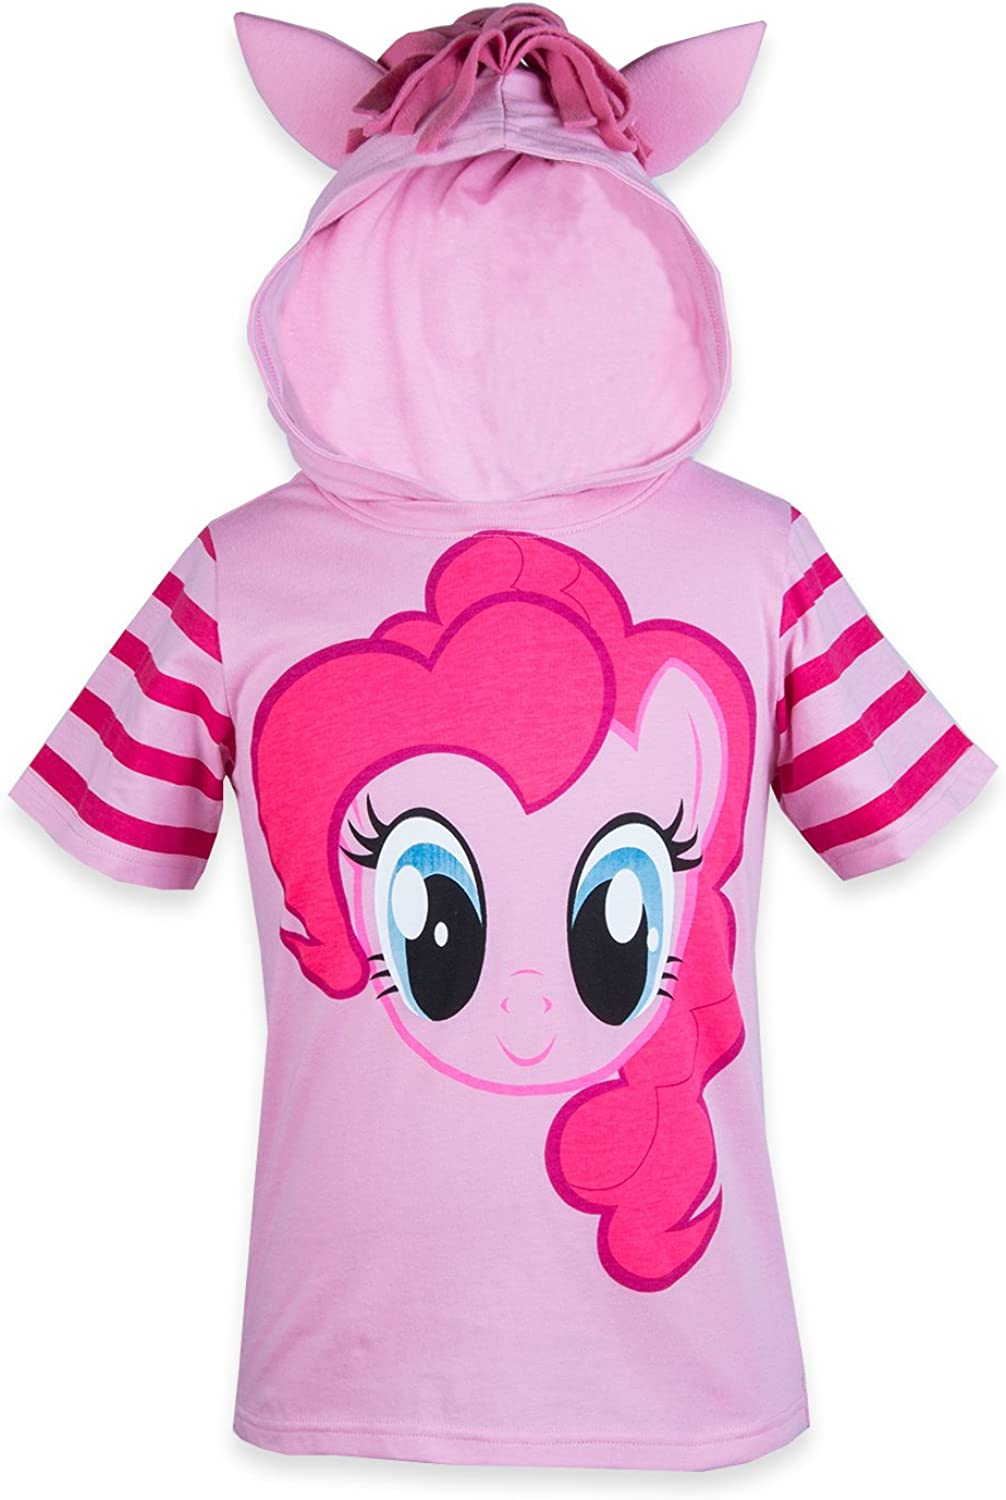 My Little Pony Hooded Shirt - Rainbow Dash, Twilight Sparkle, Pinky Pie - Girls